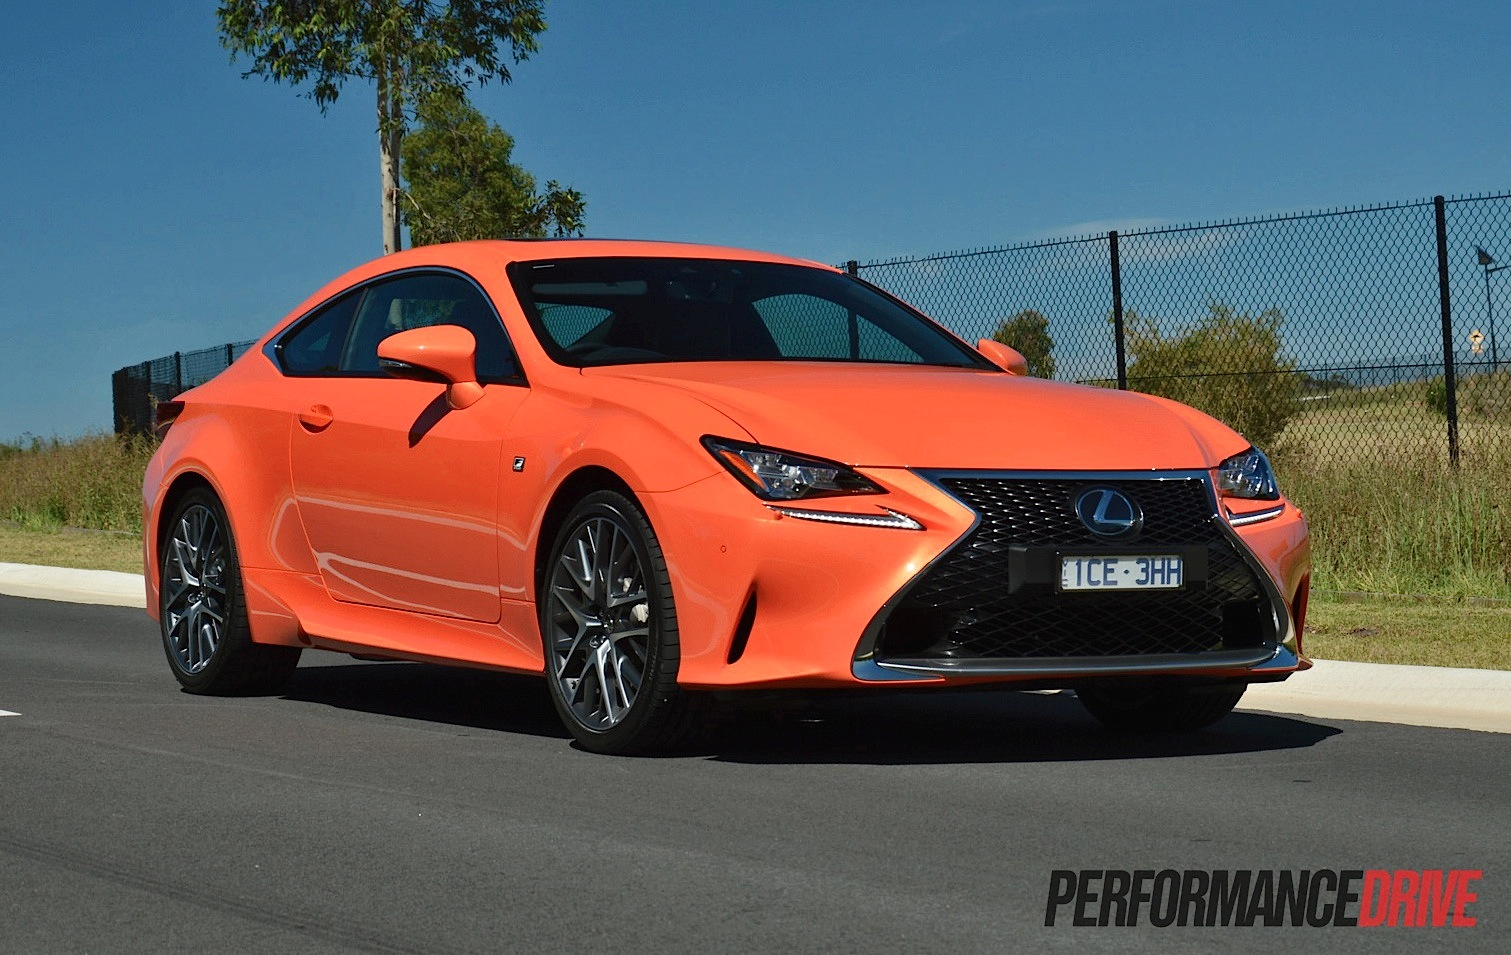 2015 lexus rc 350 f sport review video performancedrive. Black Bedroom Furniture Sets. Home Design Ideas